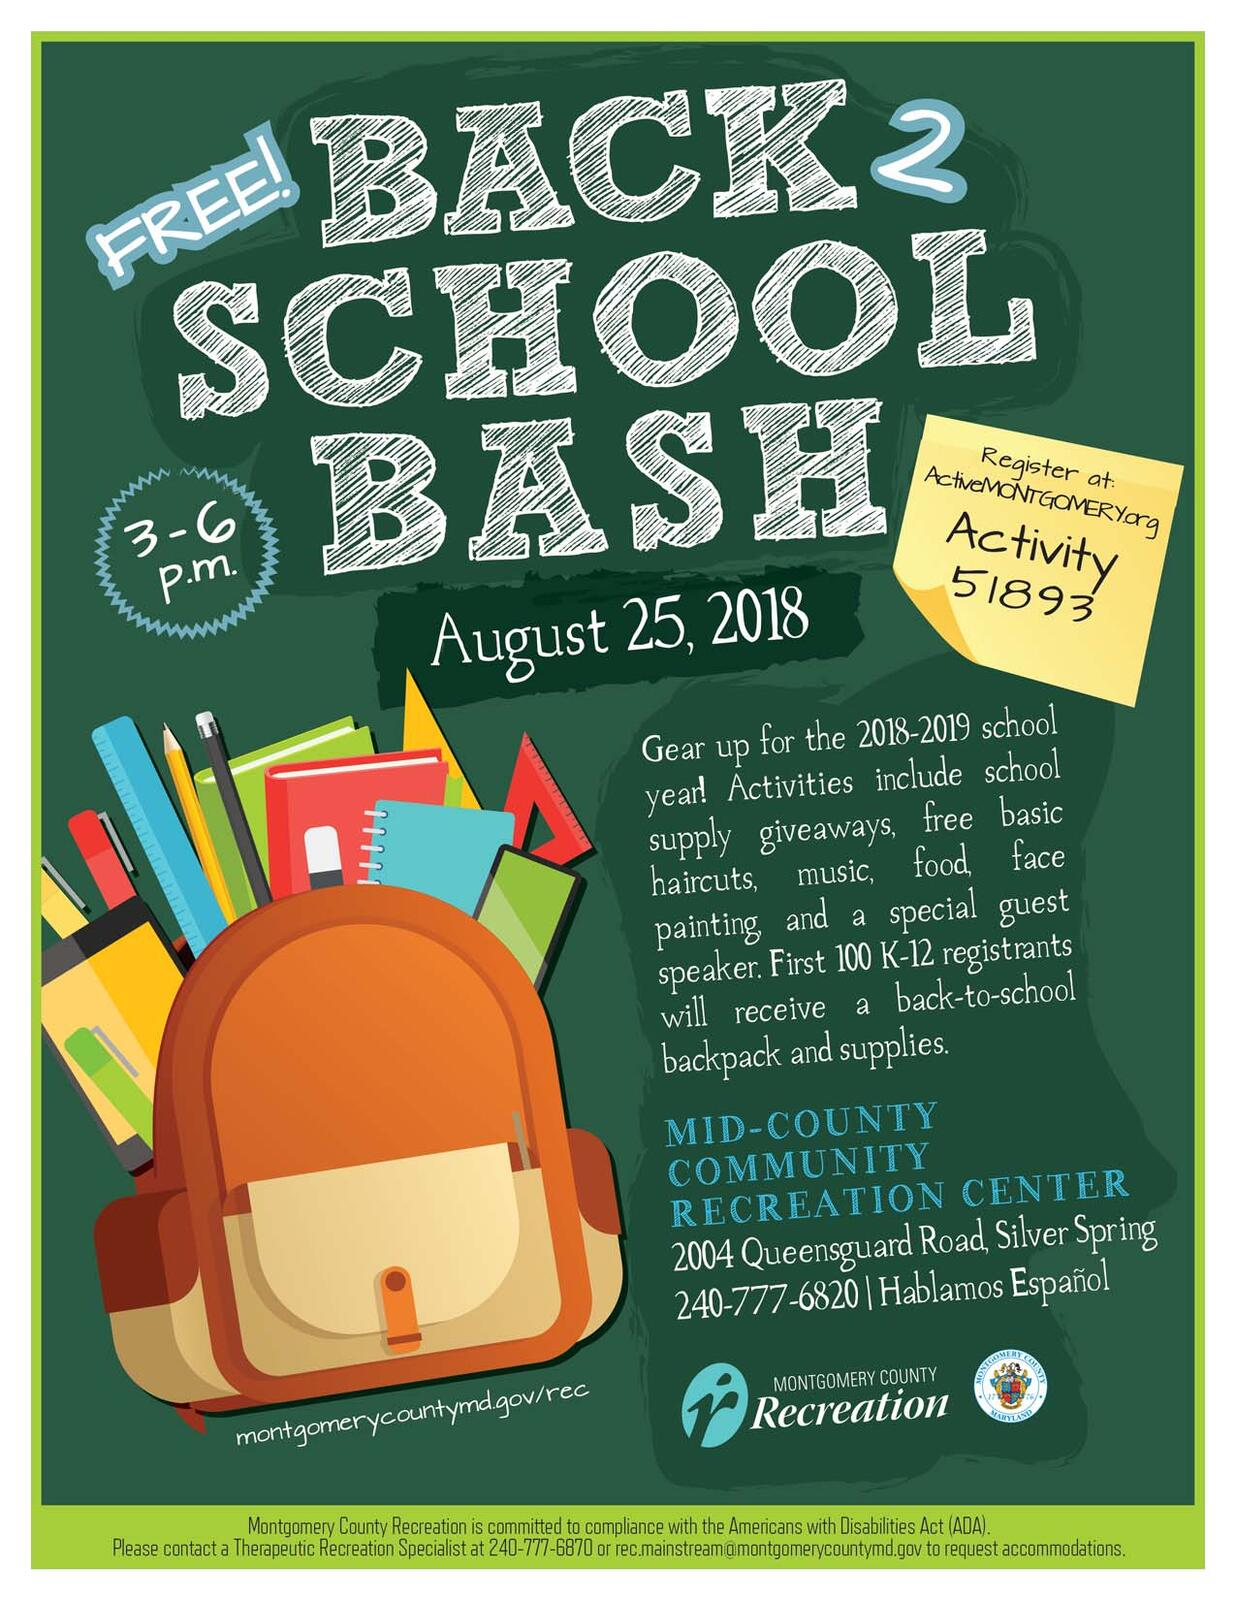 Free Back To School Bash  (Montgomery County Government